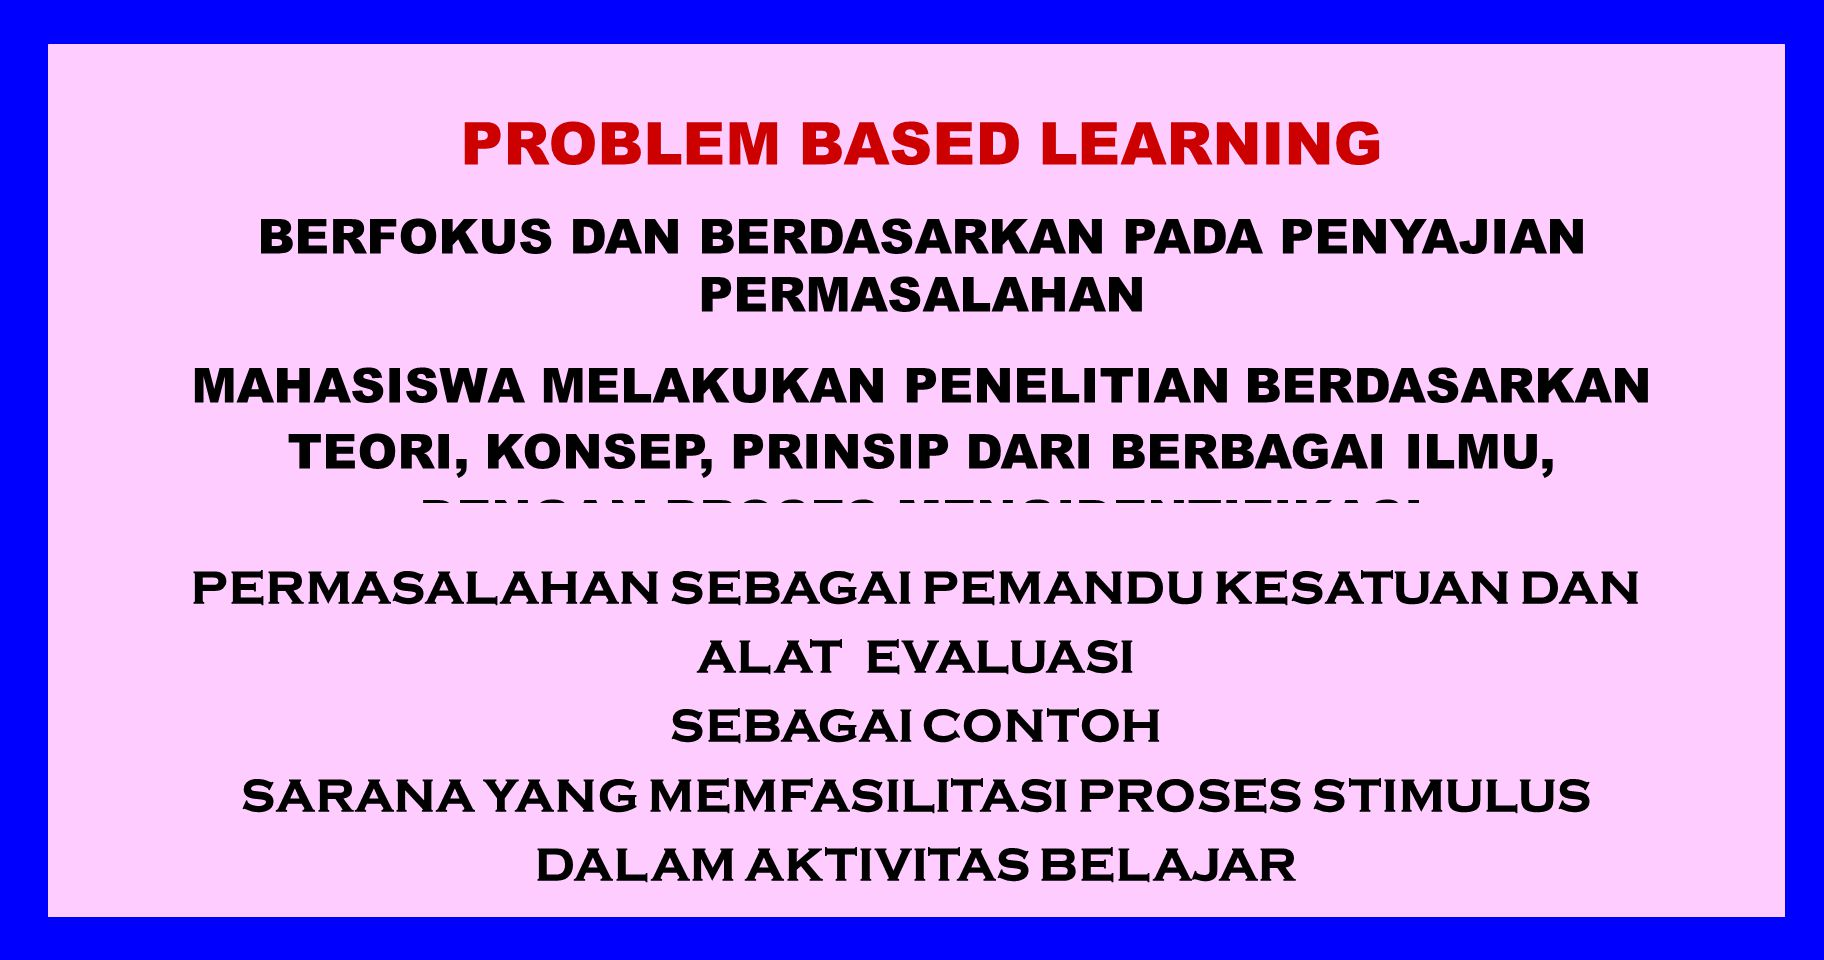 MODEL PEMBELAJARAN KOGNITIF RAGAMNYA: @ PROBLEM BASED LEARNING @ COGNITIVE STRATEGIS @ DISCOVERY LEARNING @ PROJECT BASED LEARNING